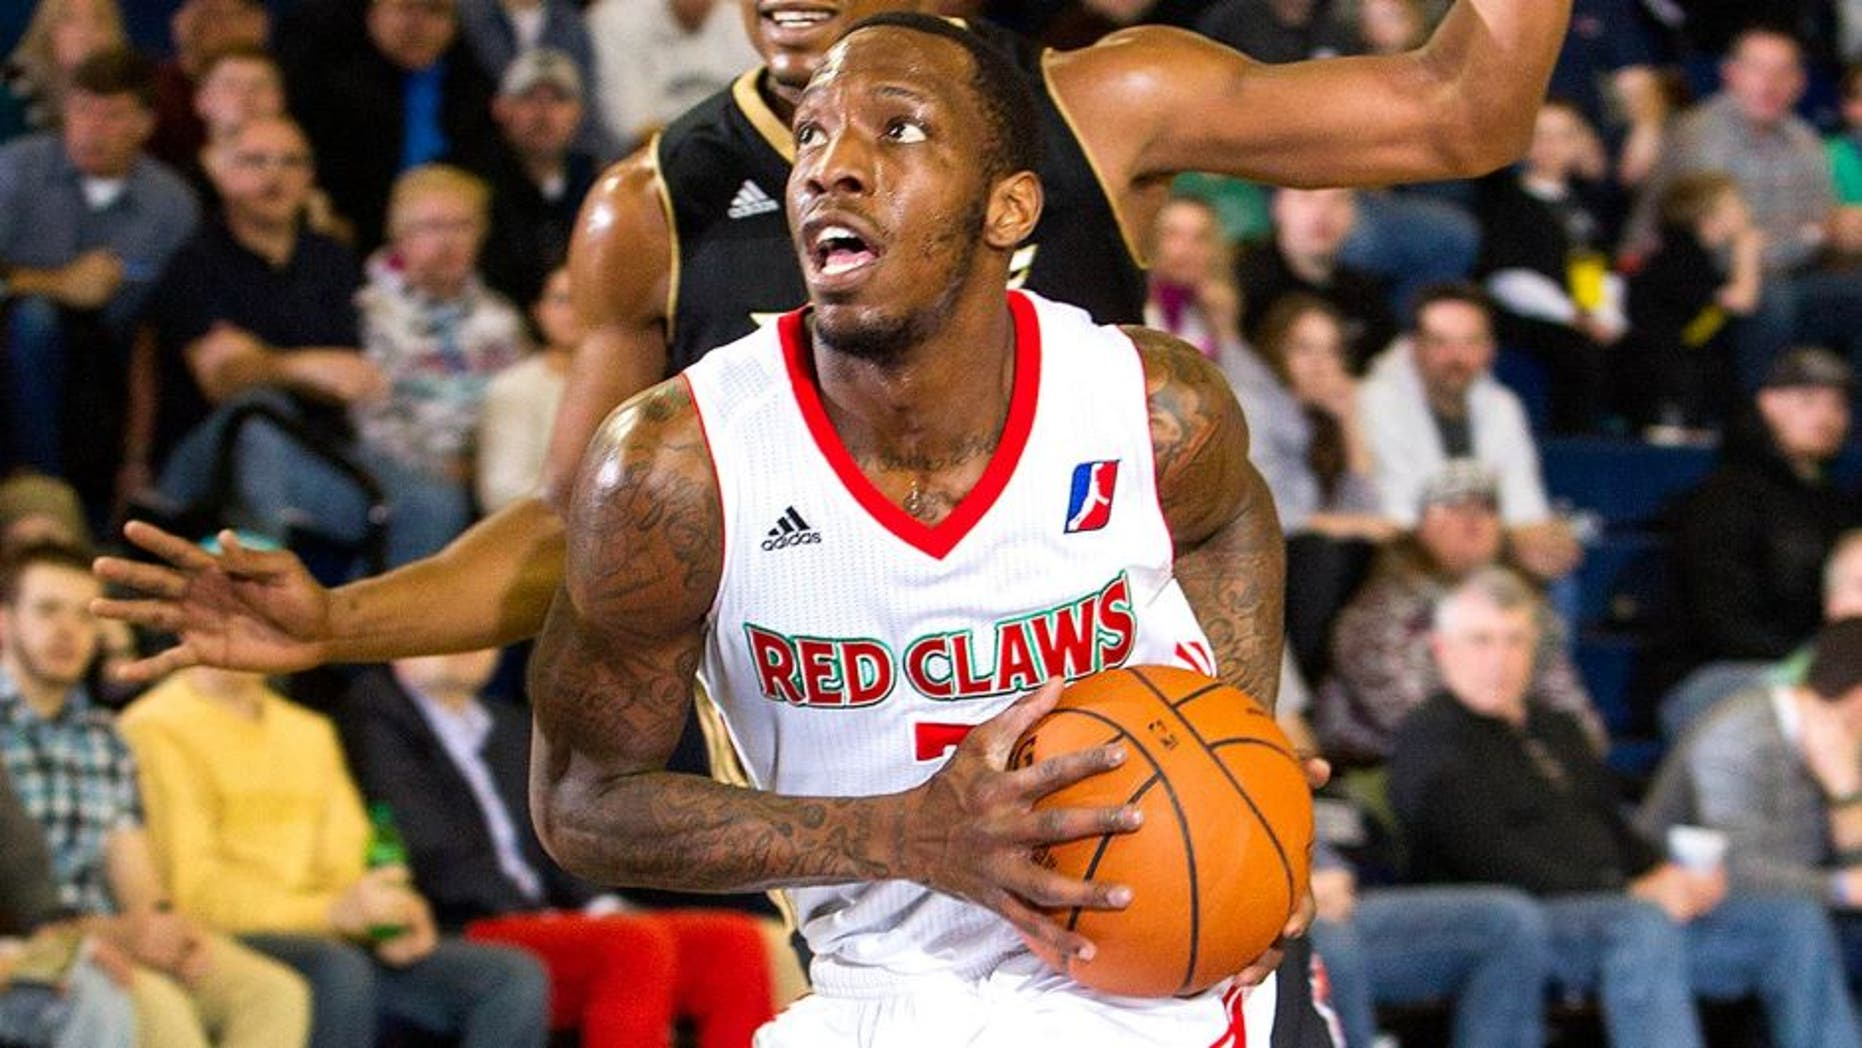 PORTLAND, ME - MARCH 16: Tyshawn Taylor #7 of the Maine Red Claws drives against the Erie BayHawks on March 16, 2014 at the Portland Expo in Portland, Maine. NOTE TO USER: User expressly acknowledges and agrees that, by downloading and/or using this photograph, user is consenting to the terms and conditions of the Getty Images License Agreement. Mandatory Copyright Notice: Copyright 2014 NBAE (Photo by Rich Obrey/NBAE via Getty Images)